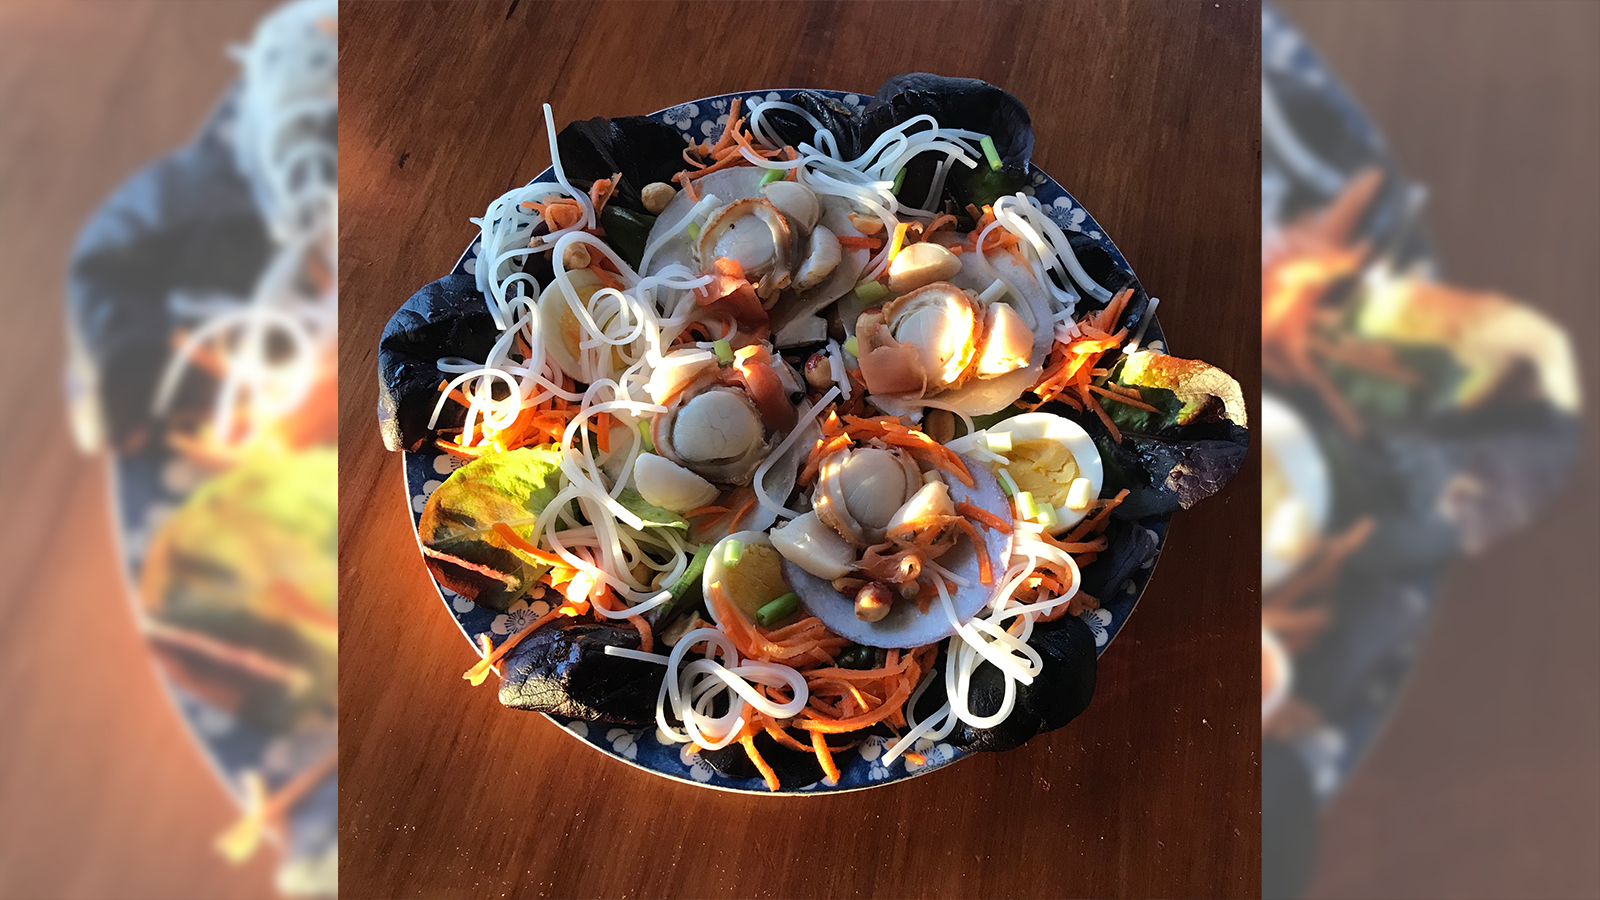 Bowl with scallops, noodles, salad greens, carrots, hard-boiled eggs, and other food items. The bowl is set on a wooden surface.